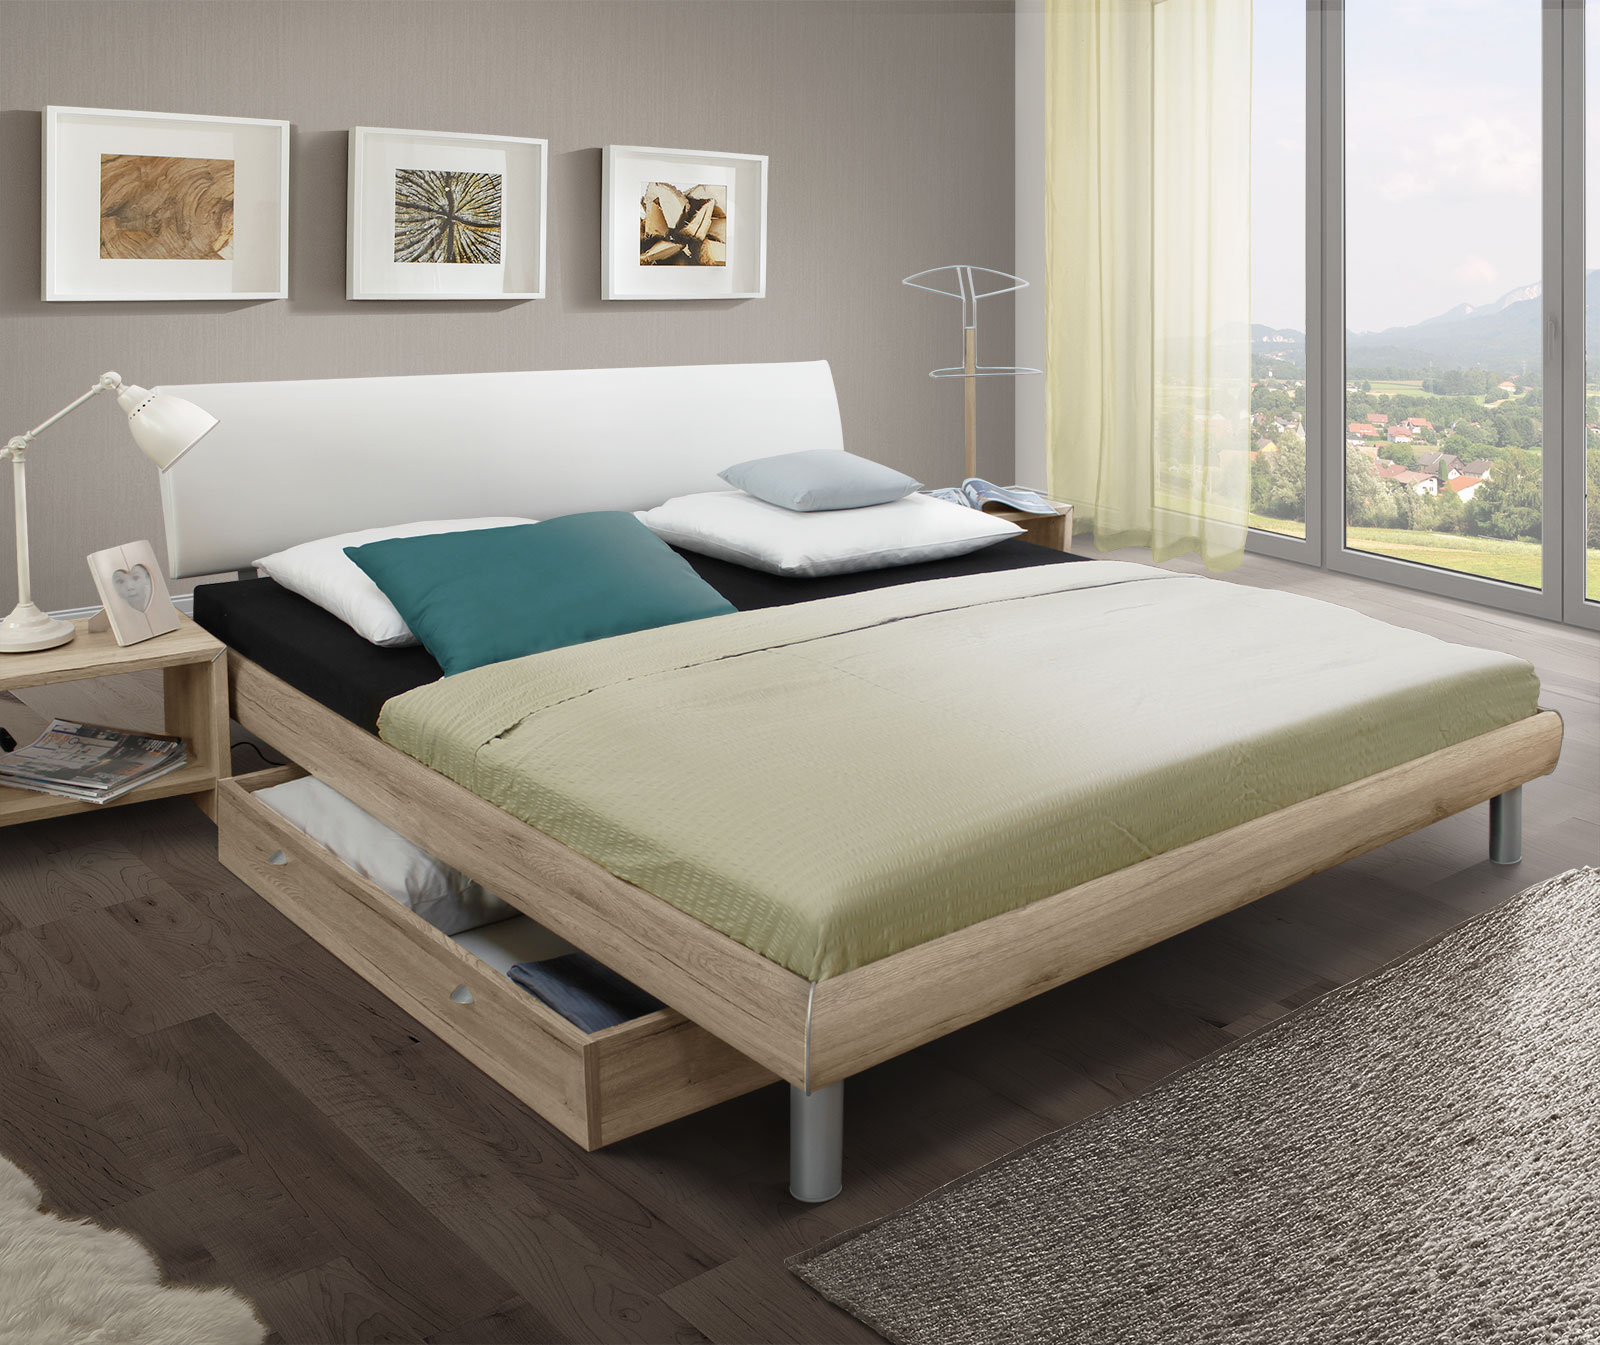 g nstiges bett mit holzoptik eiche san remo tanaro. Black Bedroom Furniture Sets. Home Design Ideas